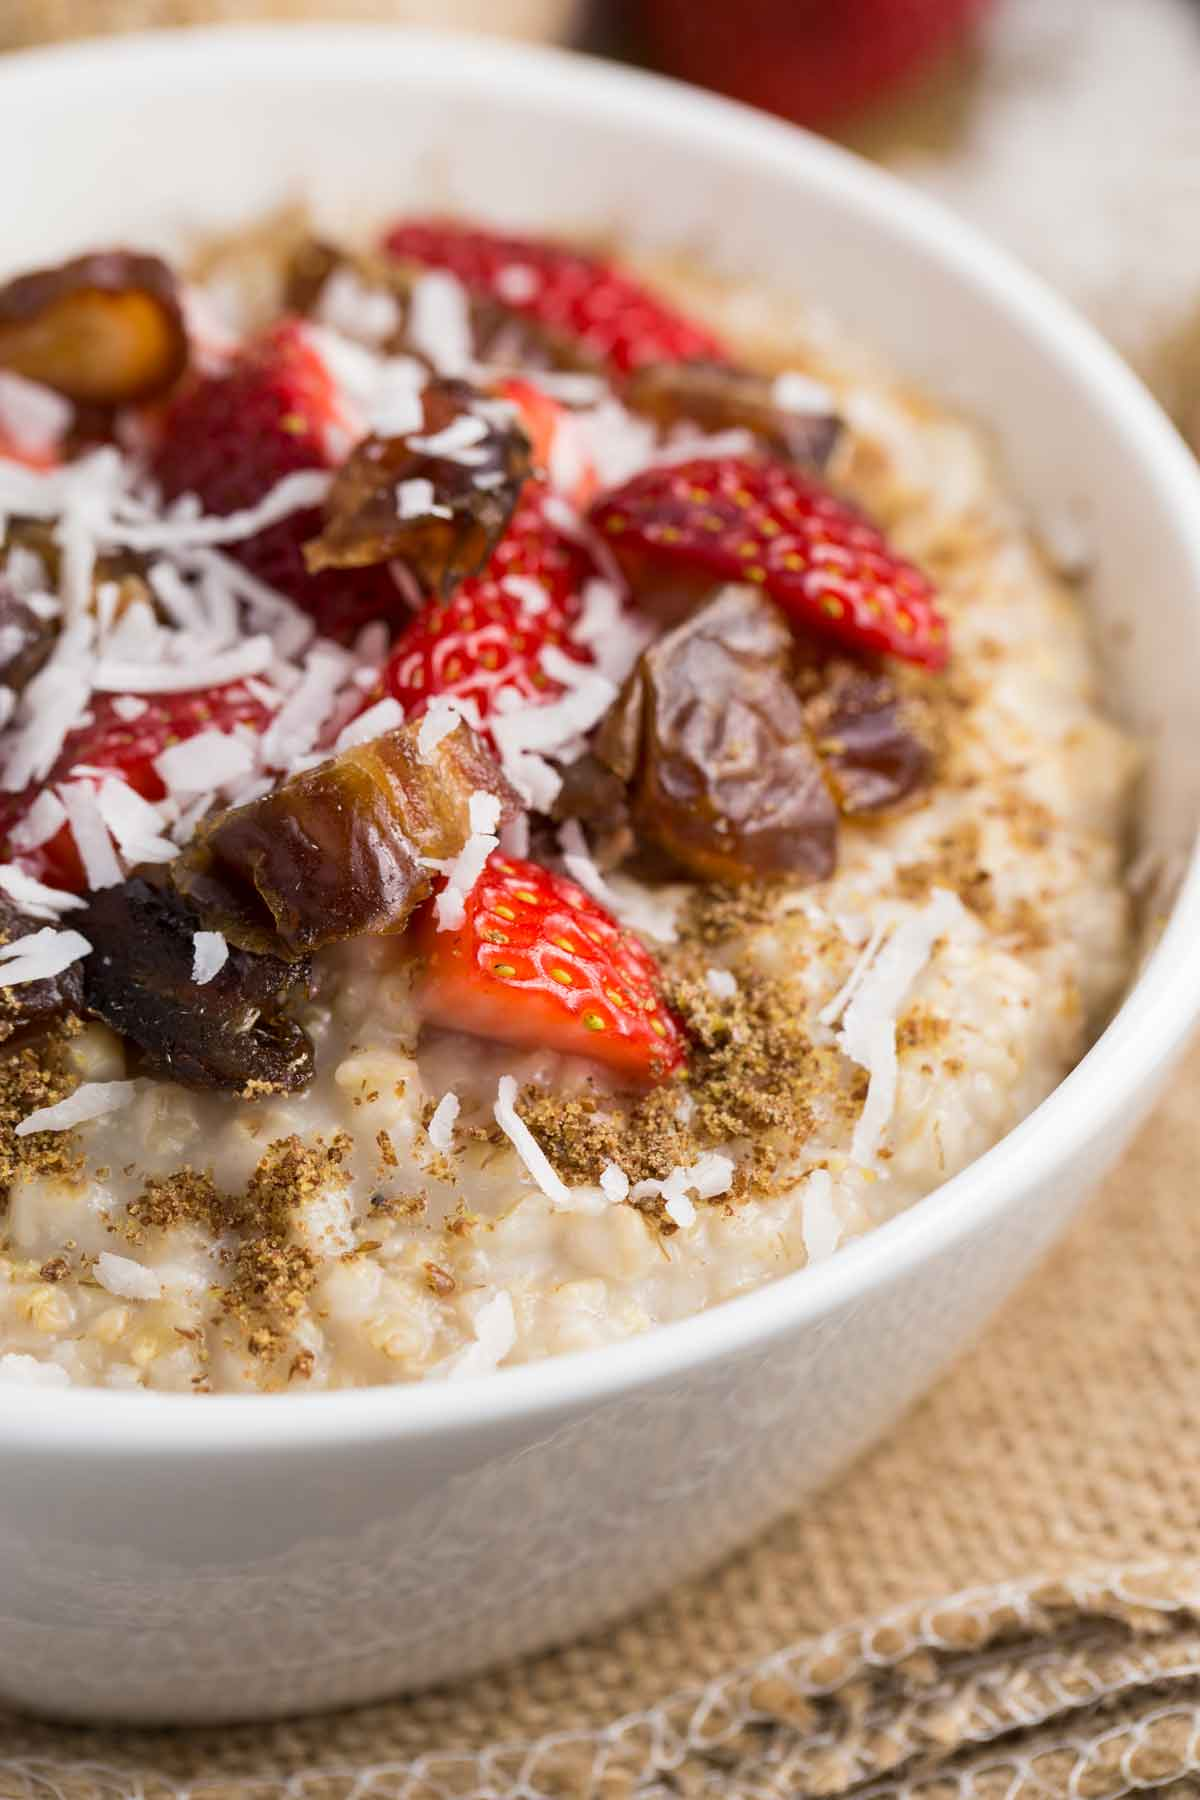 Steel cut oatmeal topped with berries, dates, brown sugar and coconut flakes.